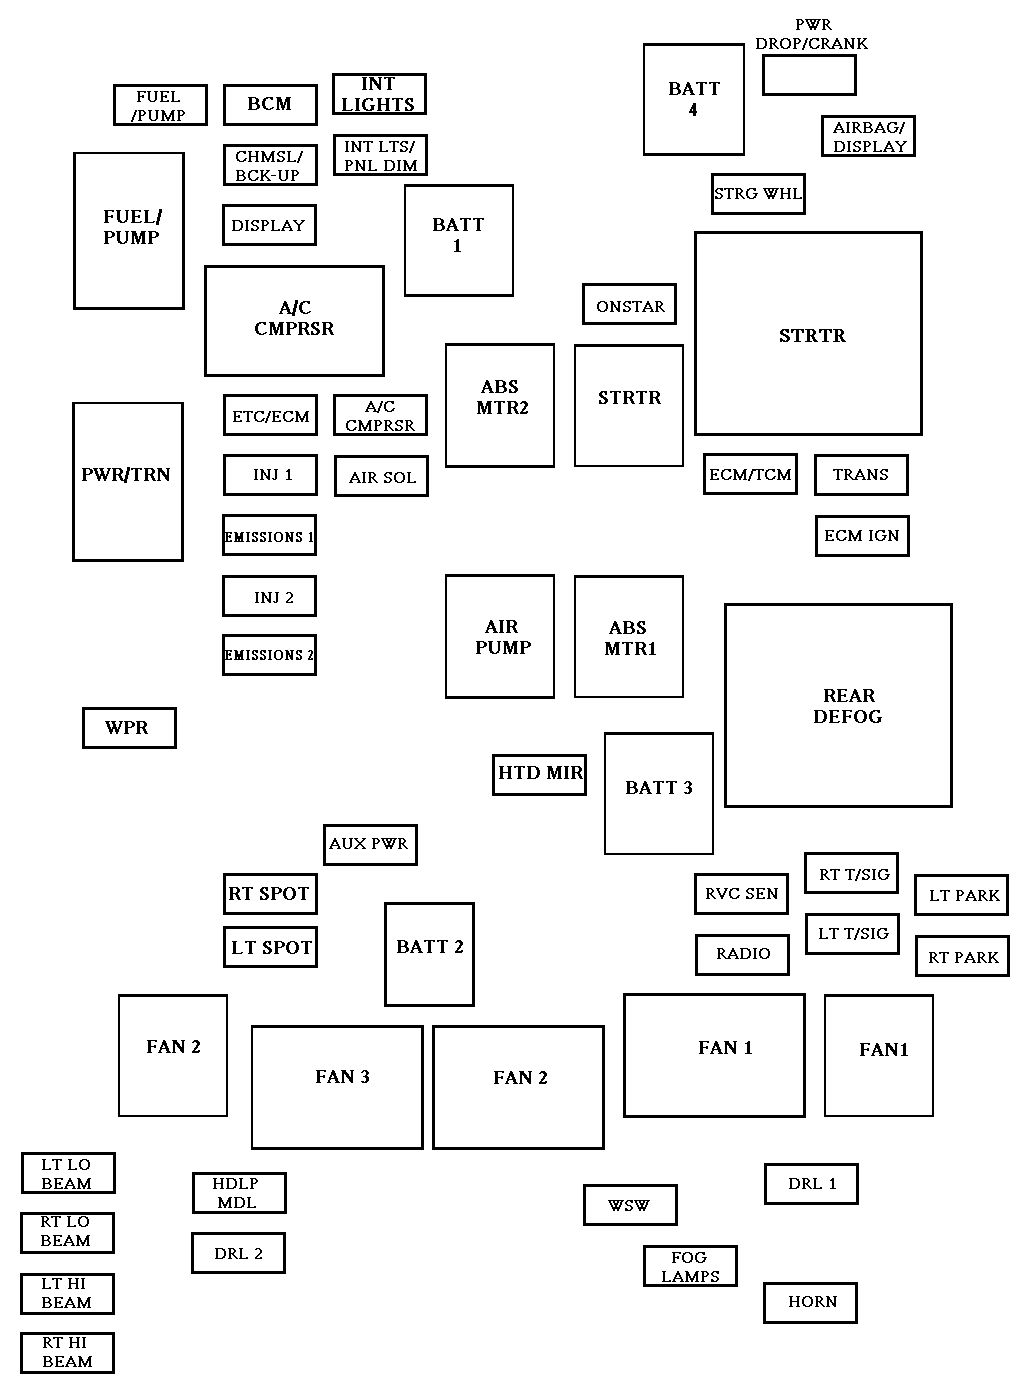 06 impala fuse box wiring diagram post impala fuse box diagram 06 impala fuse box wiring [ 1025 x 1388 Pixel ]